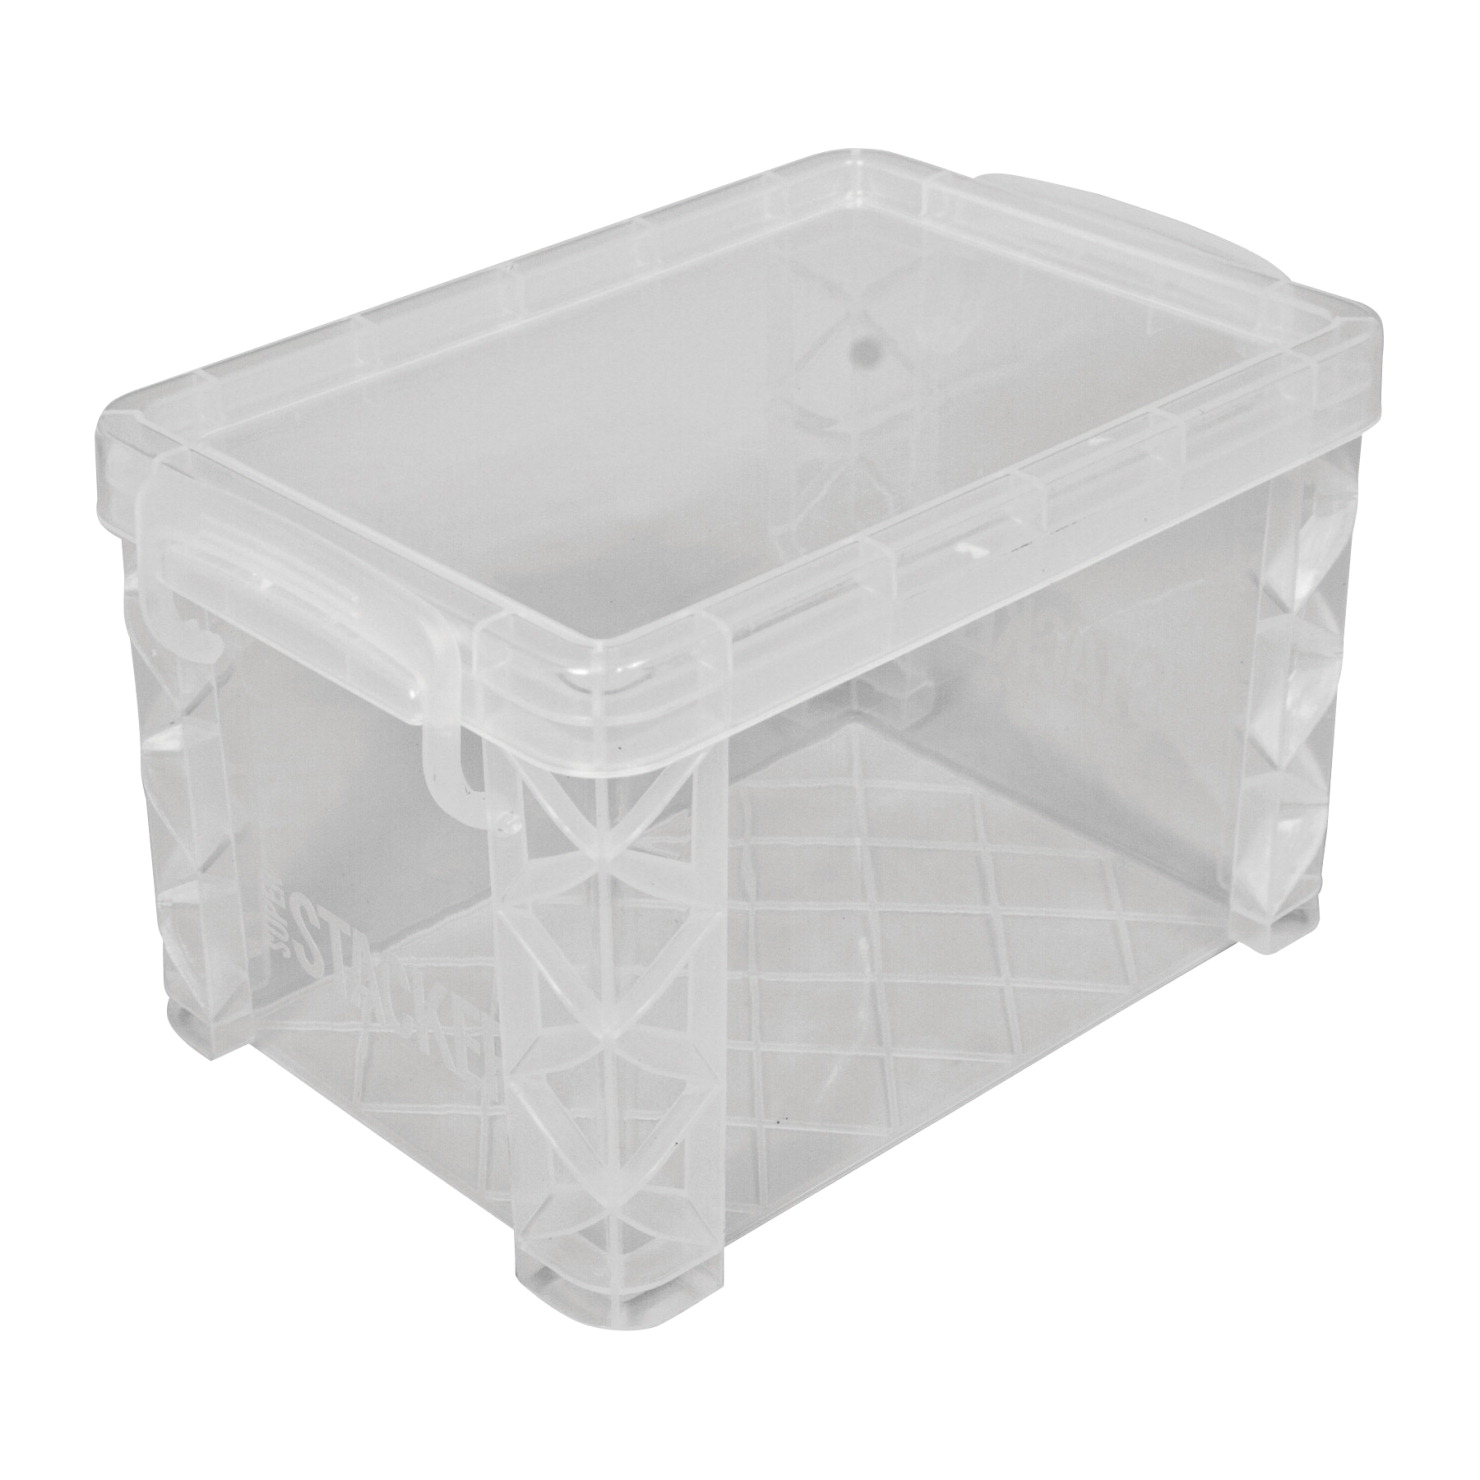 advantus plastic file index card holder 4 x 6 inches clear - Index Card Holder